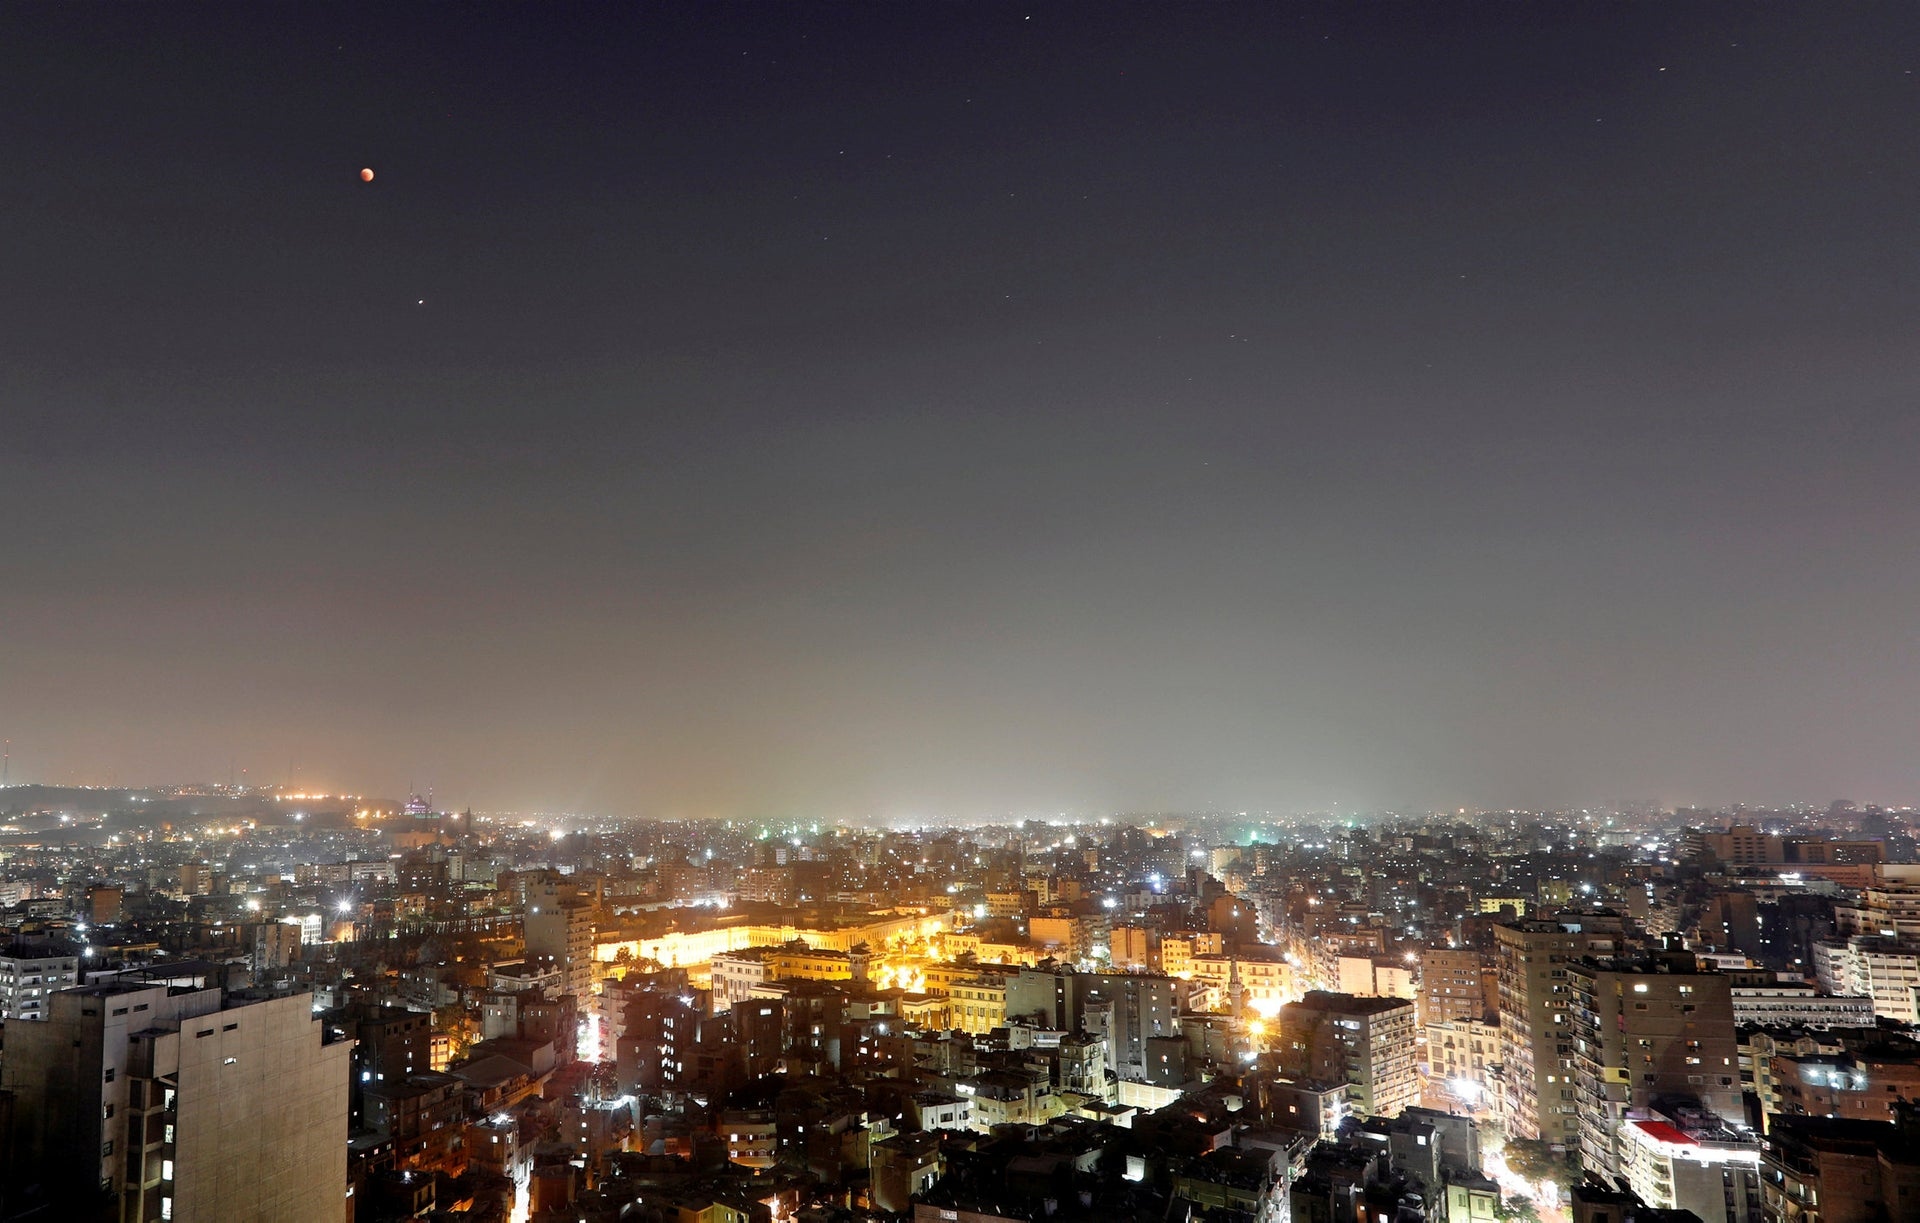 Cairo from above. Egypt has the dubious distinction of being one of the world's top-ranking countries in terms of illegal organ transplants.